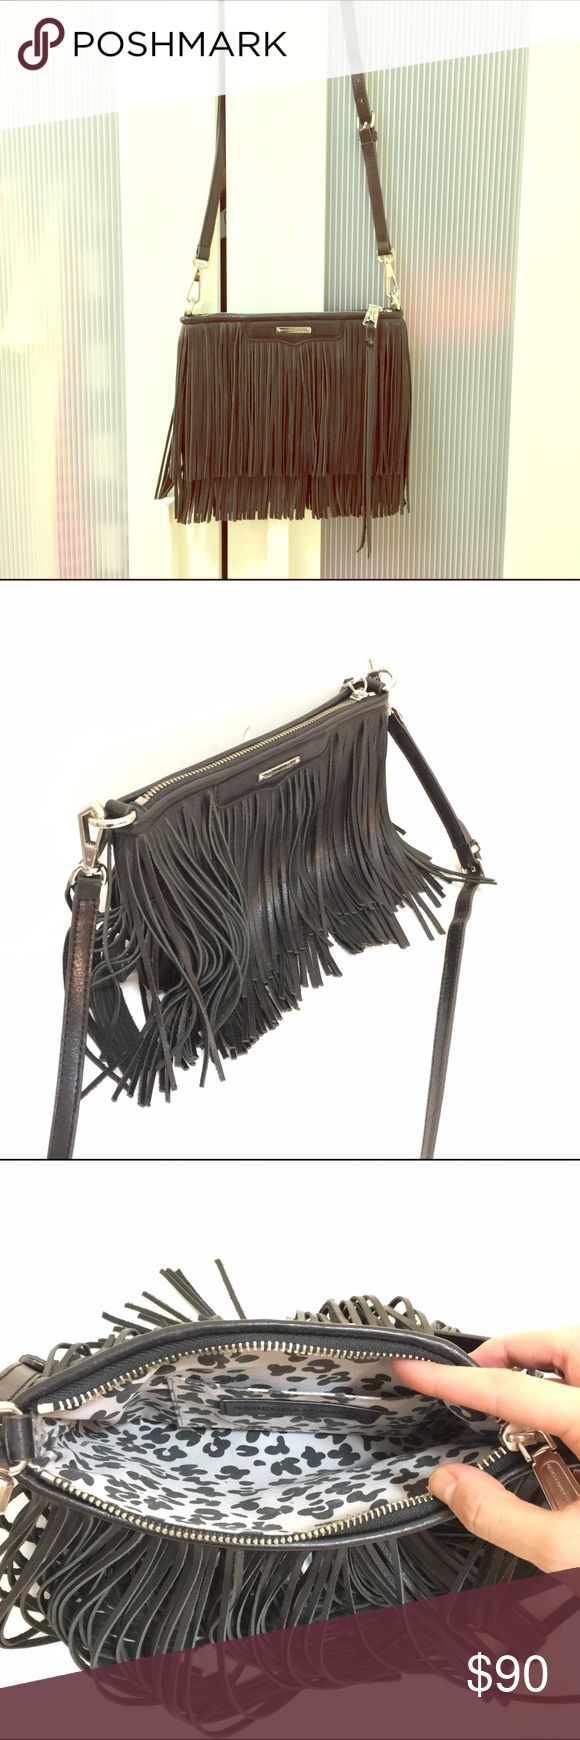 "Rebecca Minkoff Finn Fringe Clutch Crossbody New without tags or dustbag. In perfect condition - never before worn or used. The Finn Crossbody is the perfect companion for day to night outfits. This style is perfect for road trips, festivals, or drinks with friends.Tan with silver tone hardware. 9.5""W X 6""H X .25""D 24"" adjustable detachable shoulder strap drop Genuine leather 1 interior slip pocket Zipper closure. logo on back. Rebecca Minkoff Bags Crossbody Bags"